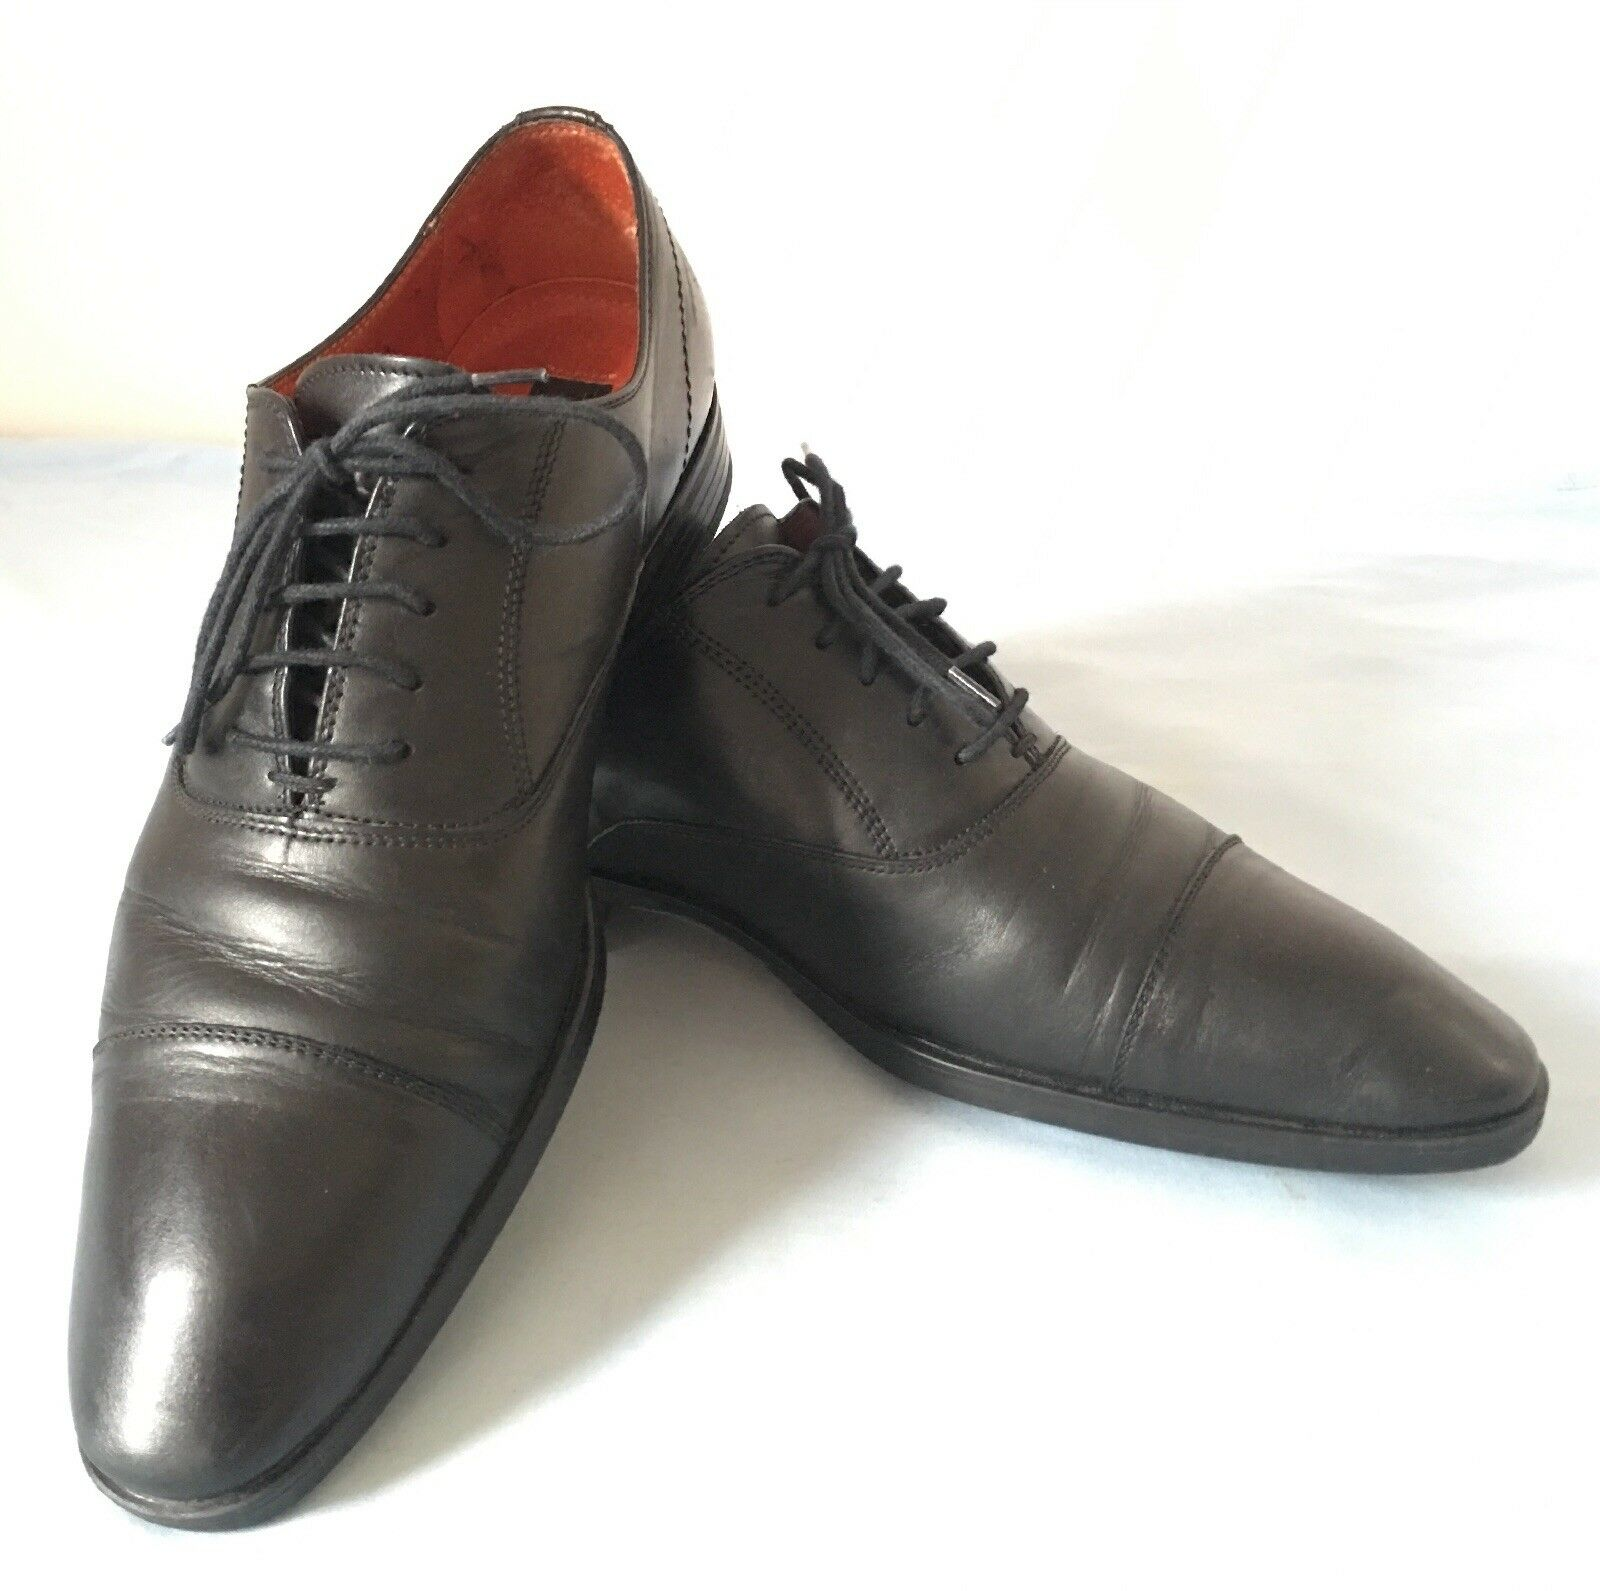 Men's Shoes Black Formal Leather Shoes Men's - UK Size 7 780115